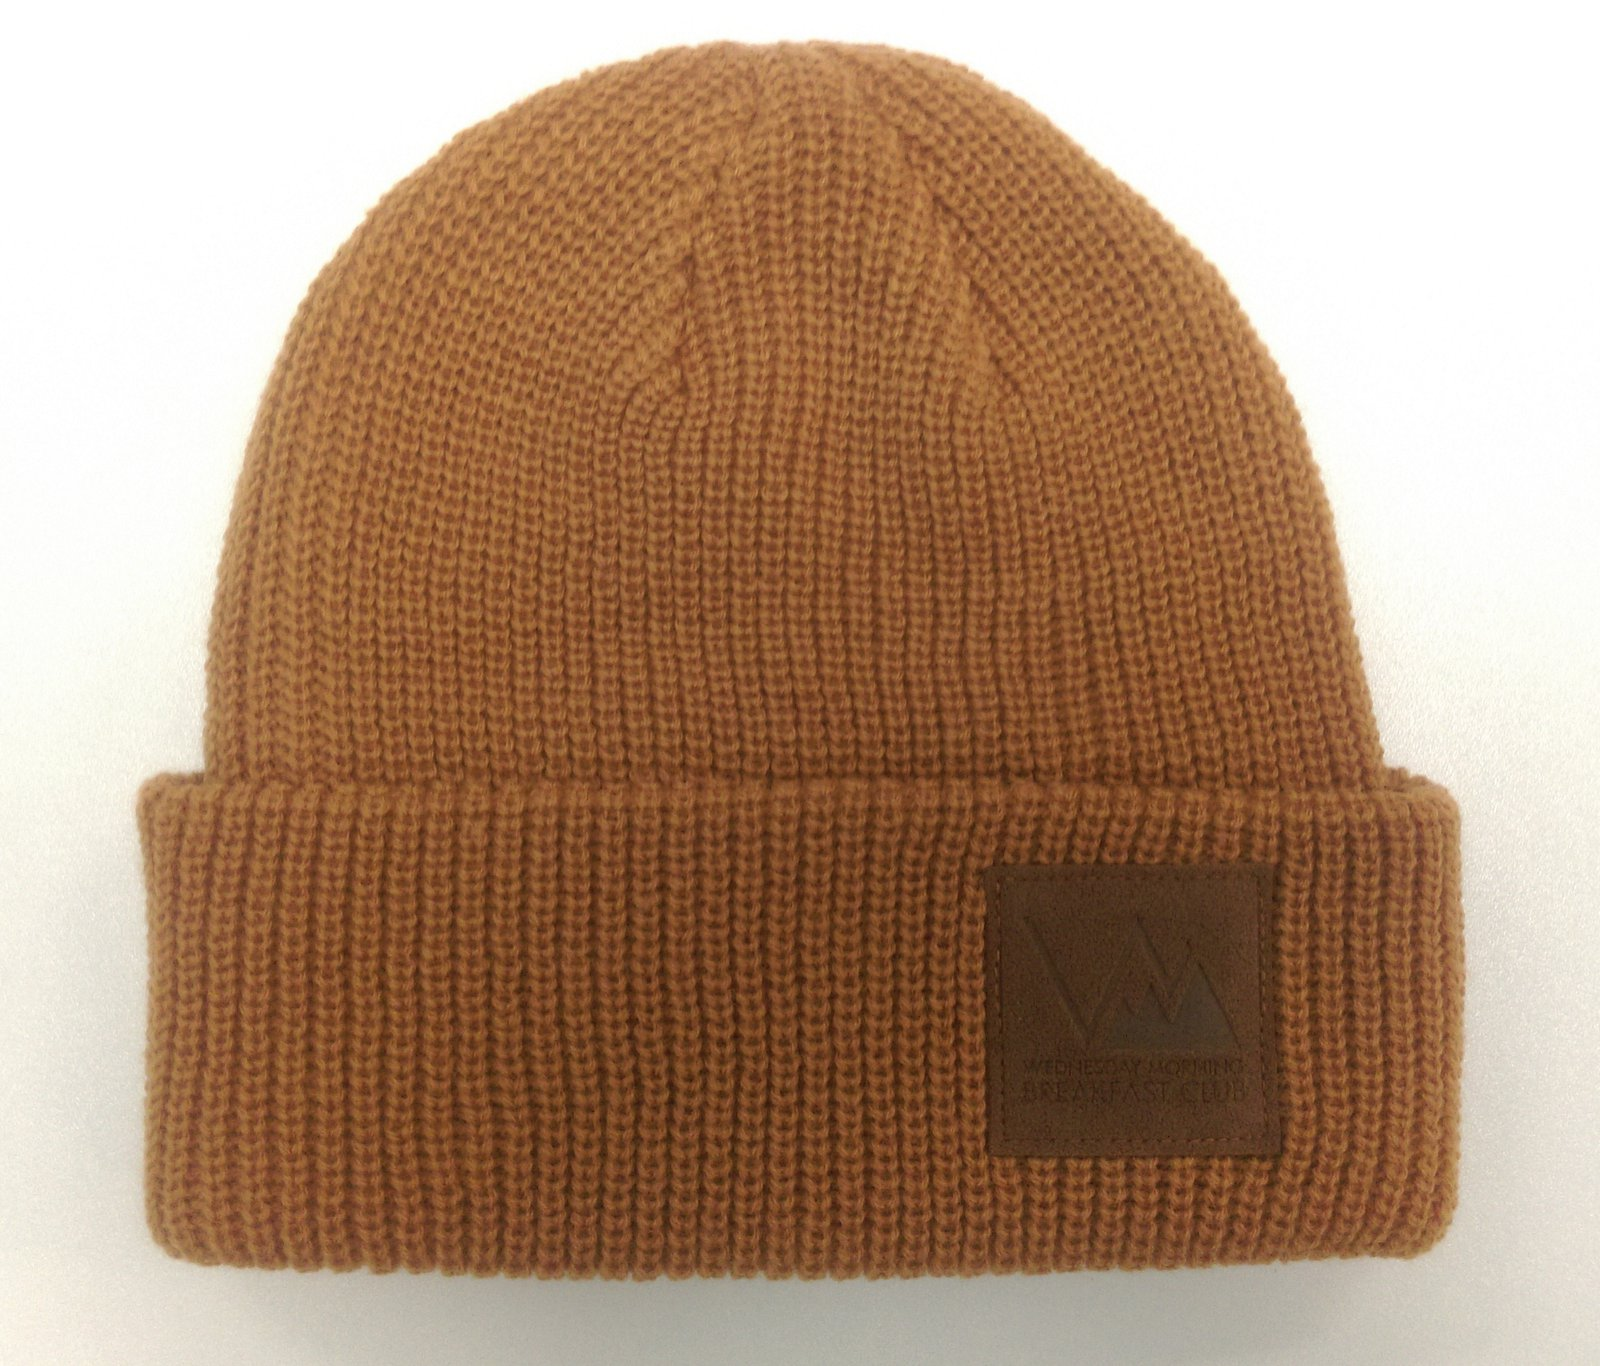 The Olympic Beanie